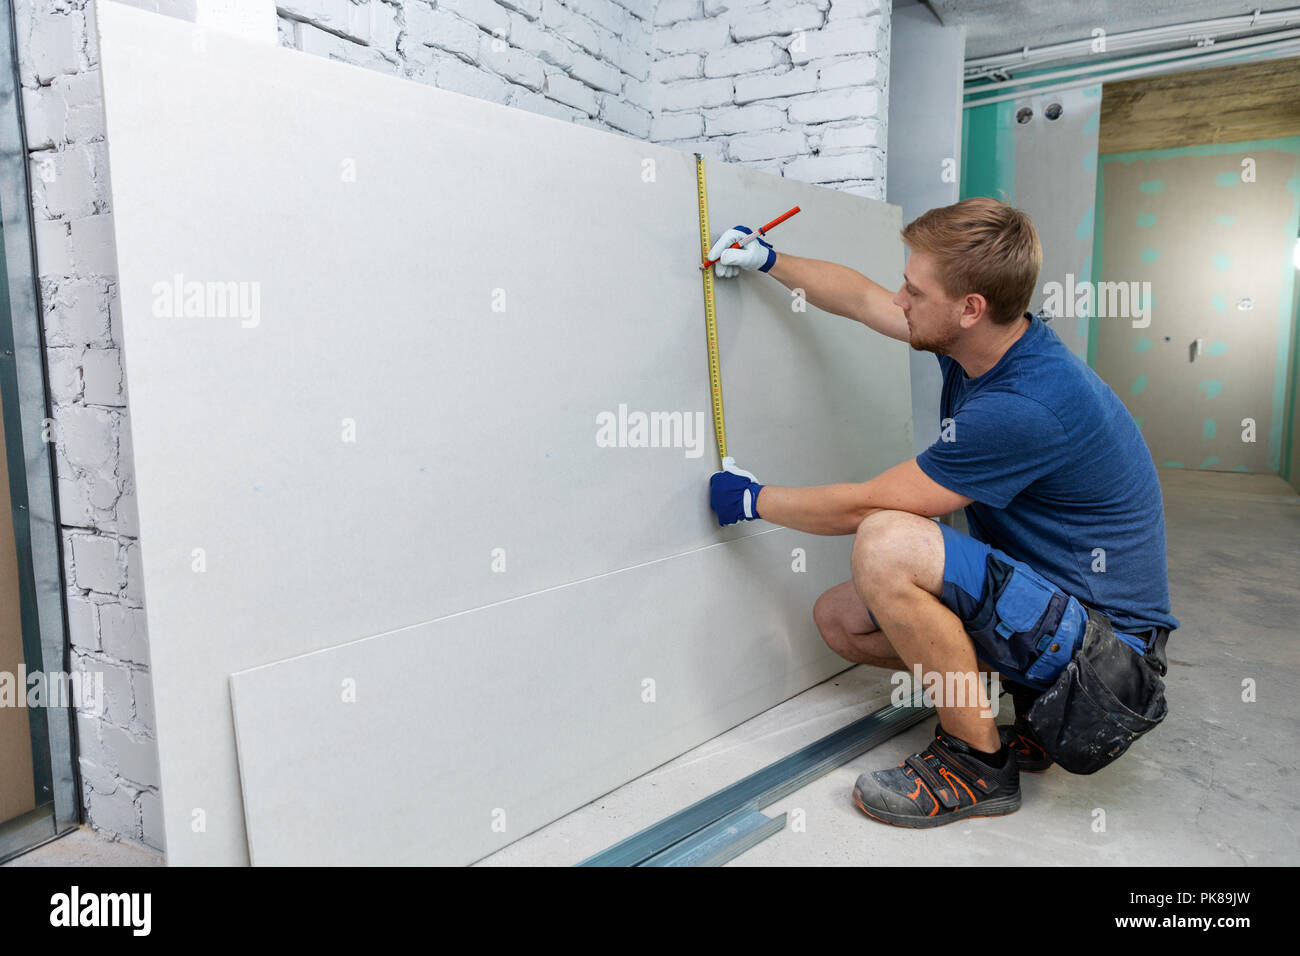 Man Measuring Plasterboard Sheet For Interior Construction Stock Photo Alamy